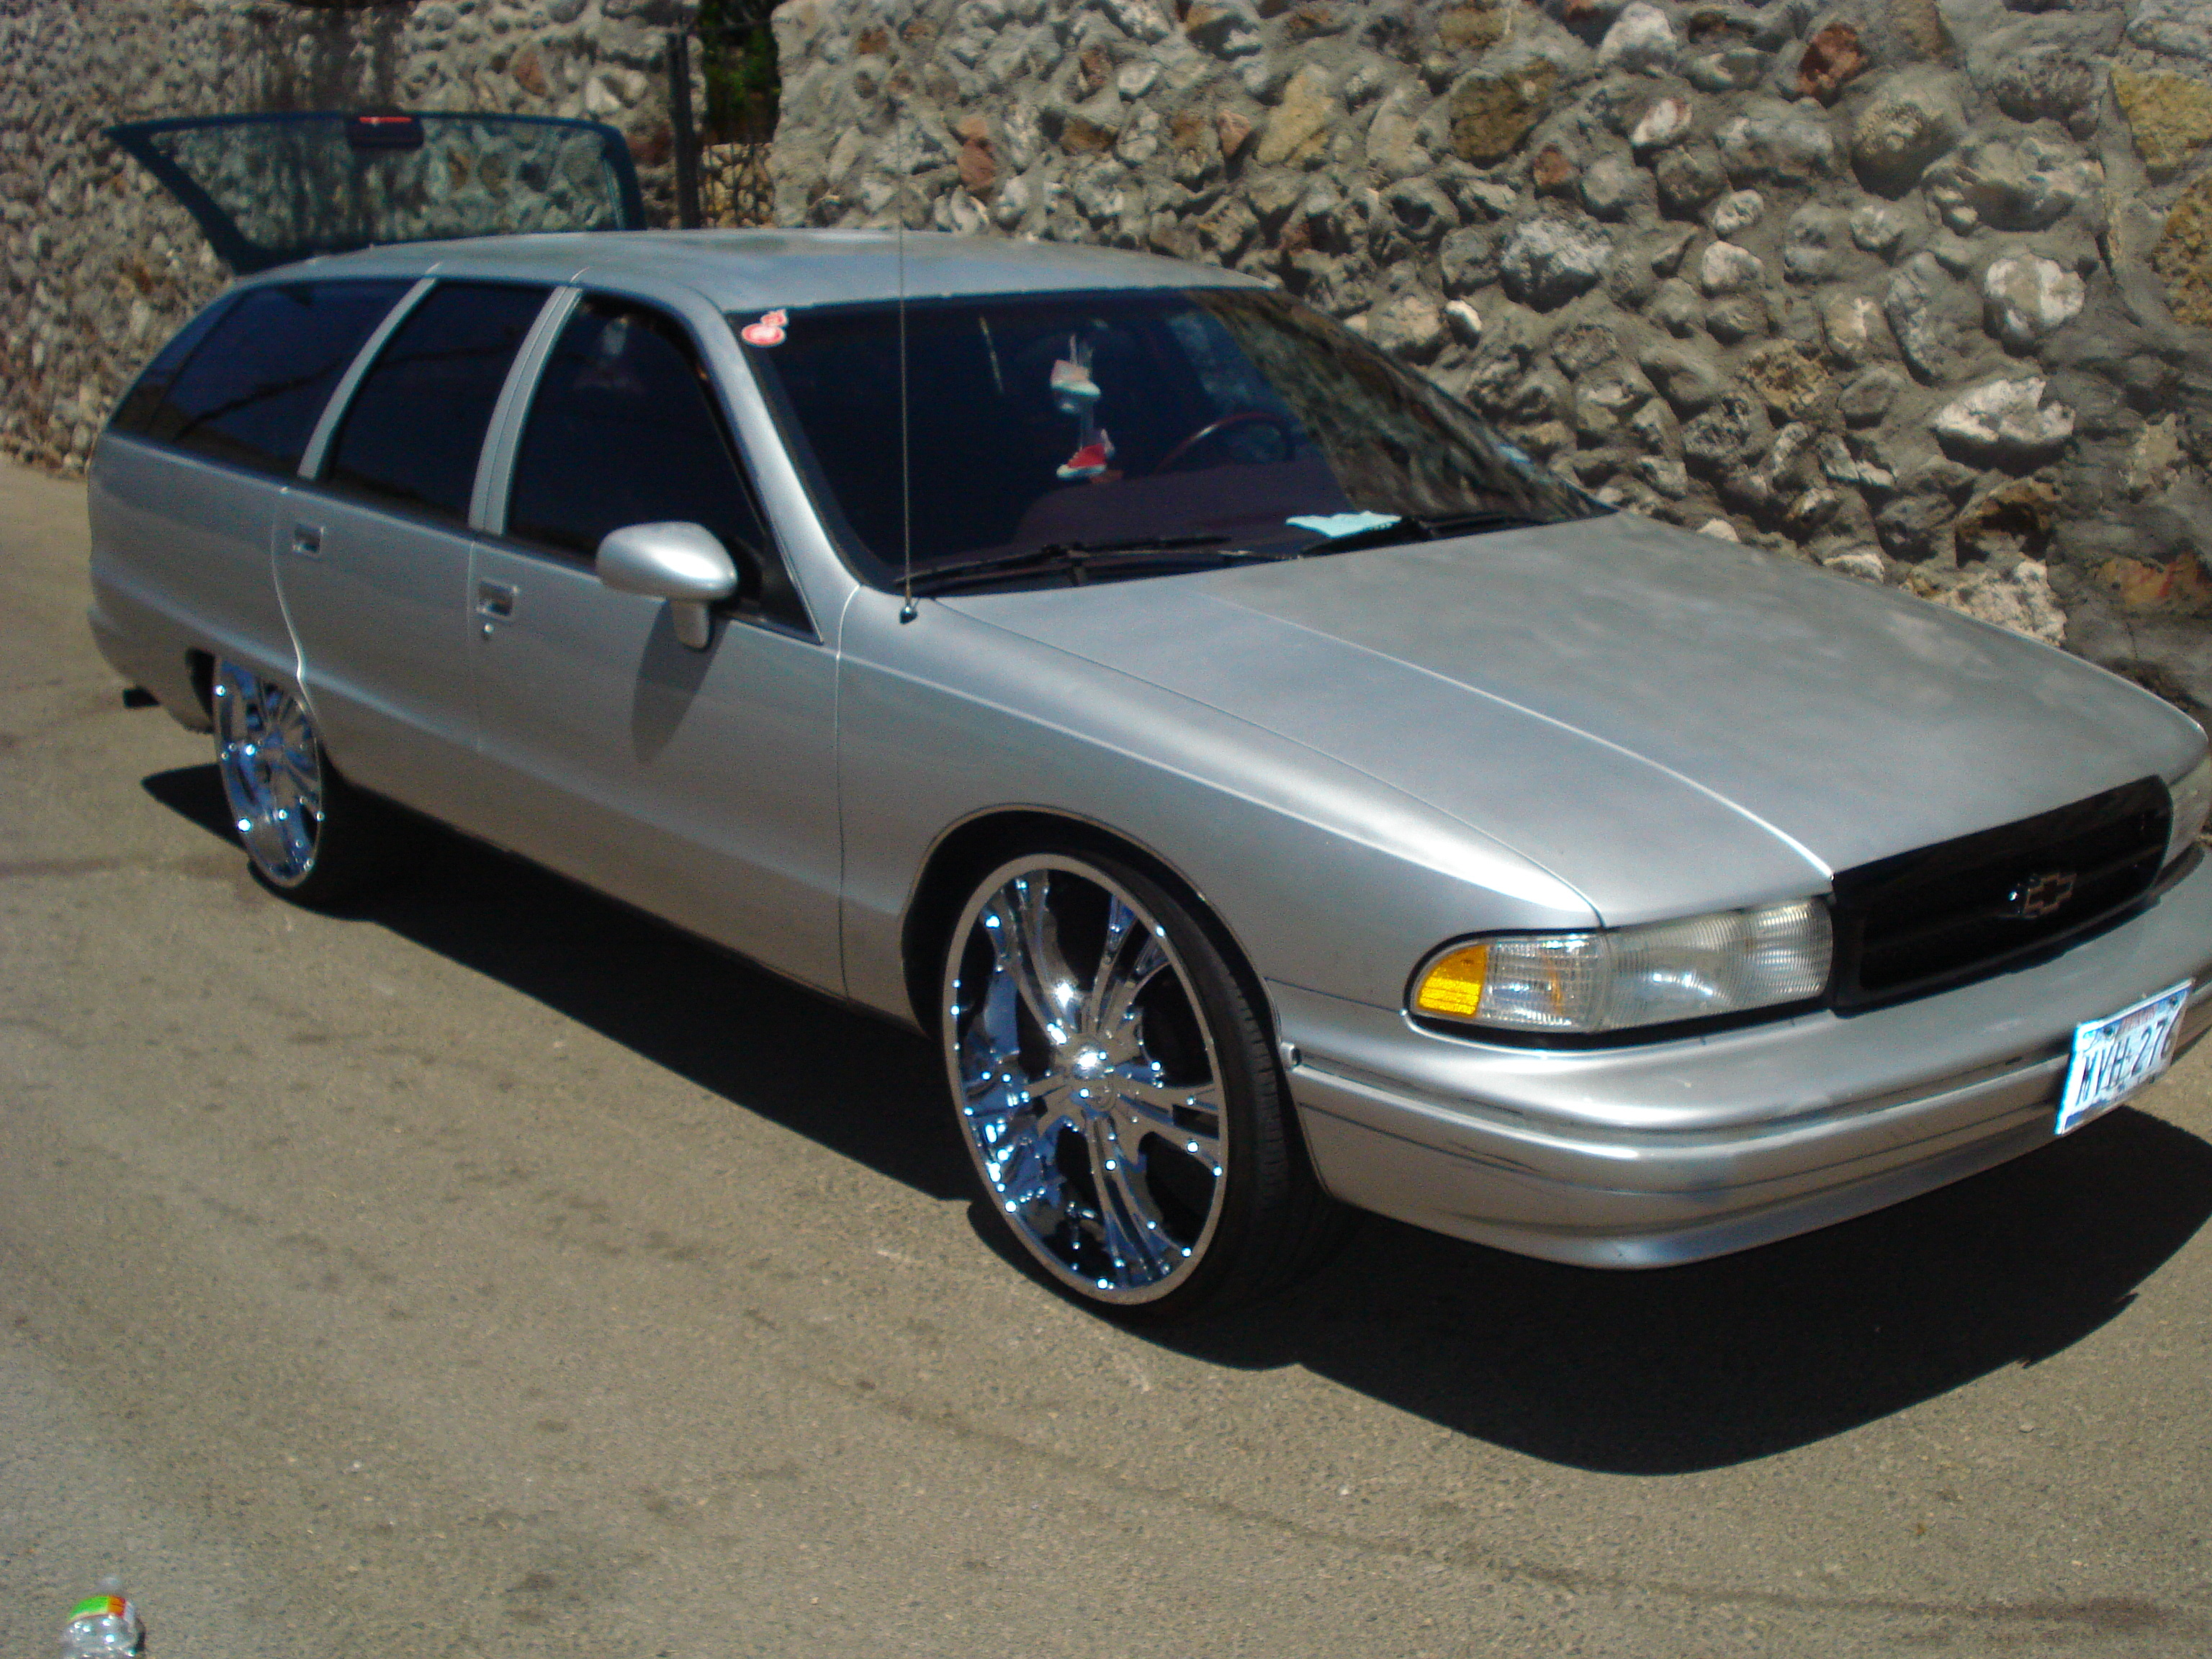 94 96 chevy caprice ss wagons for sale autos post. Black Bedroom Furniture Sets. Home Design Ideas